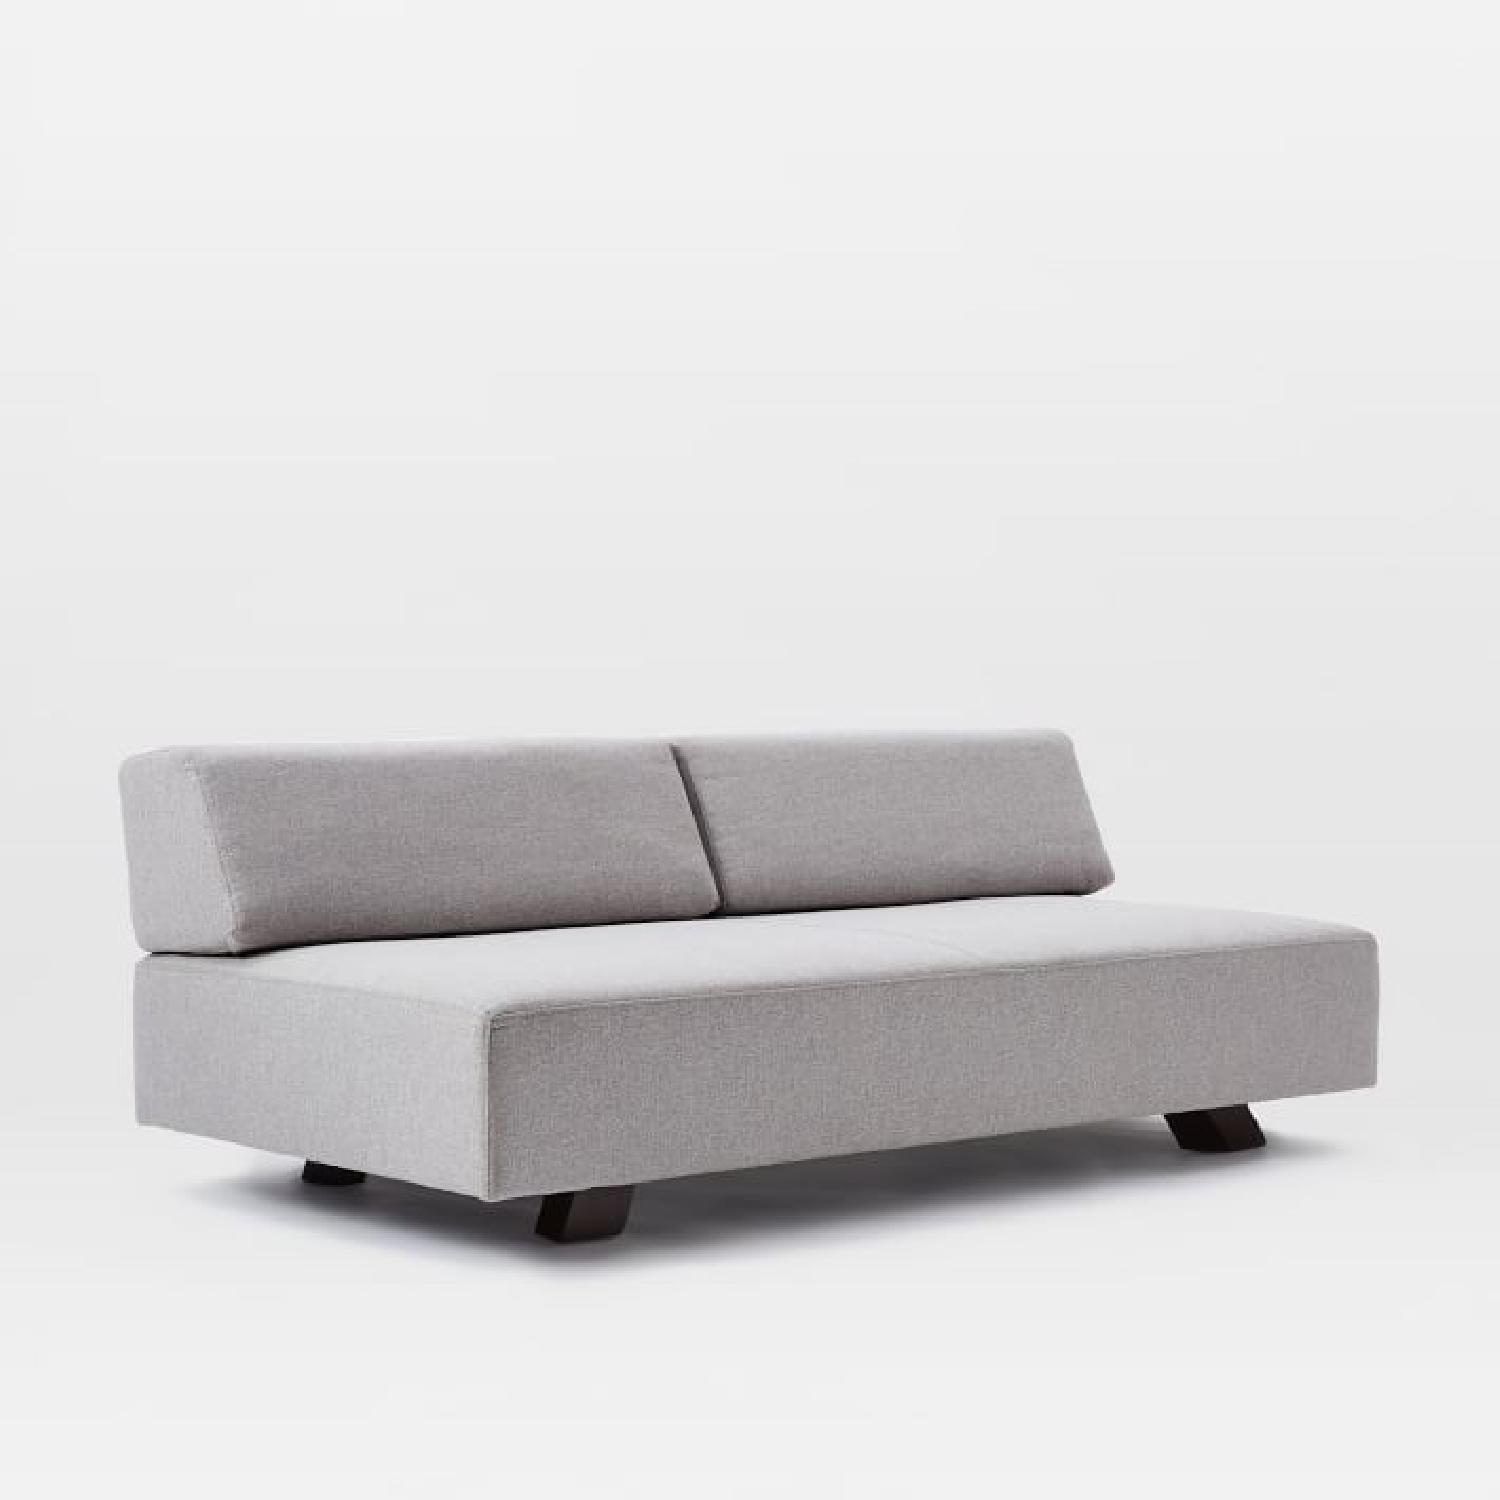 West Elm Tillary Sofa in Feather Gray